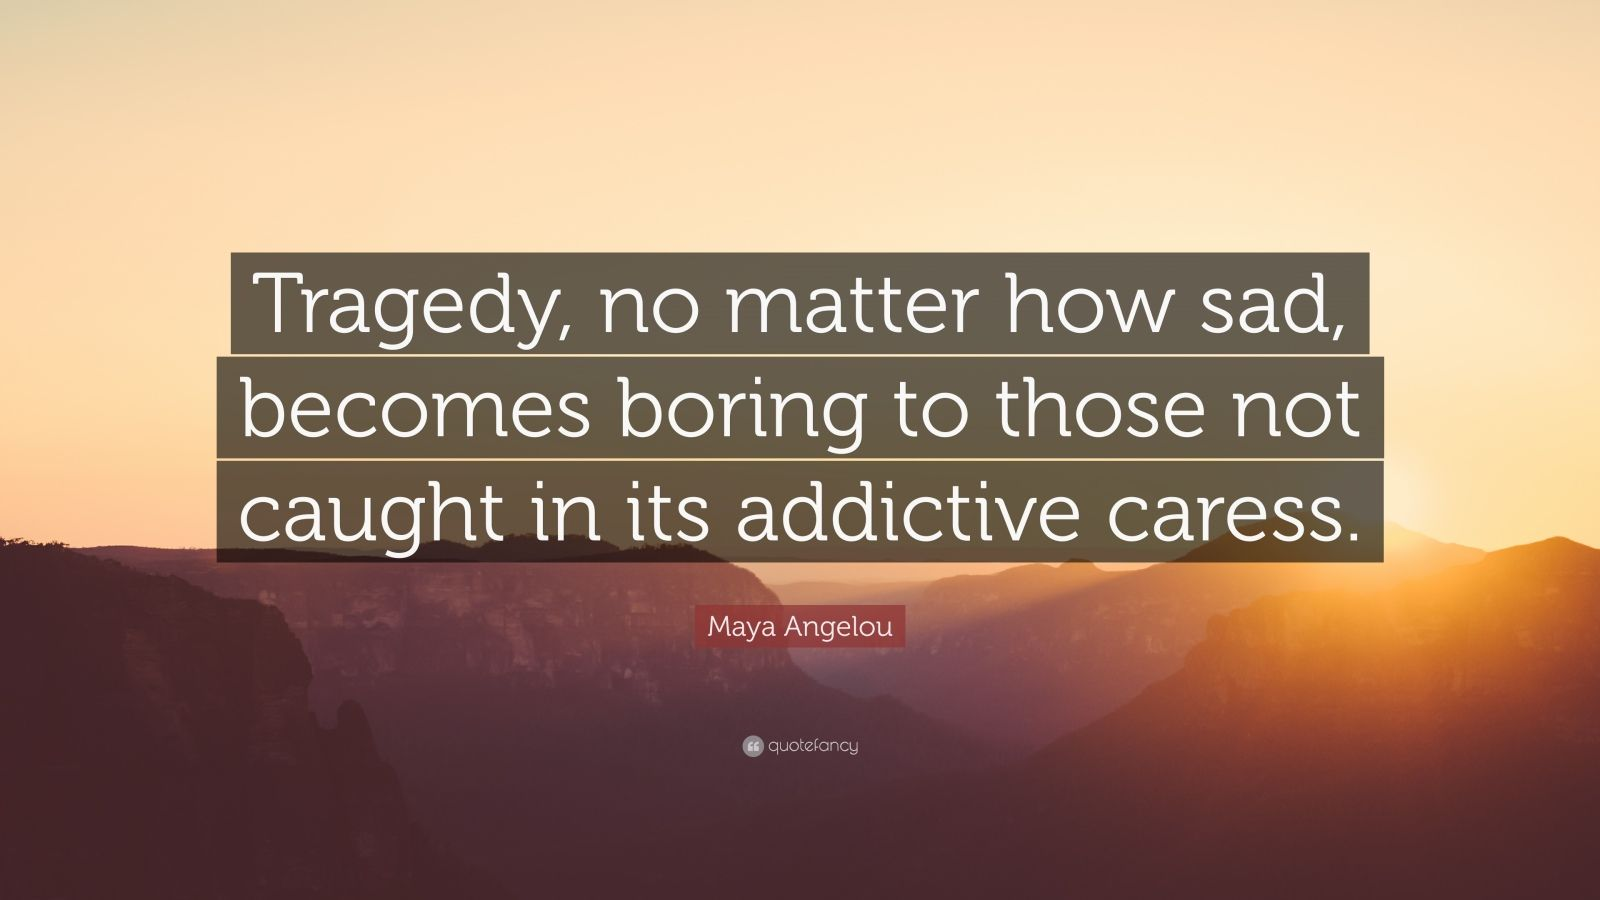 """Maya Angelou Quote: """"Tragedy, no matter how sad, becomes boring to those not caught in its addictive caress."""""""